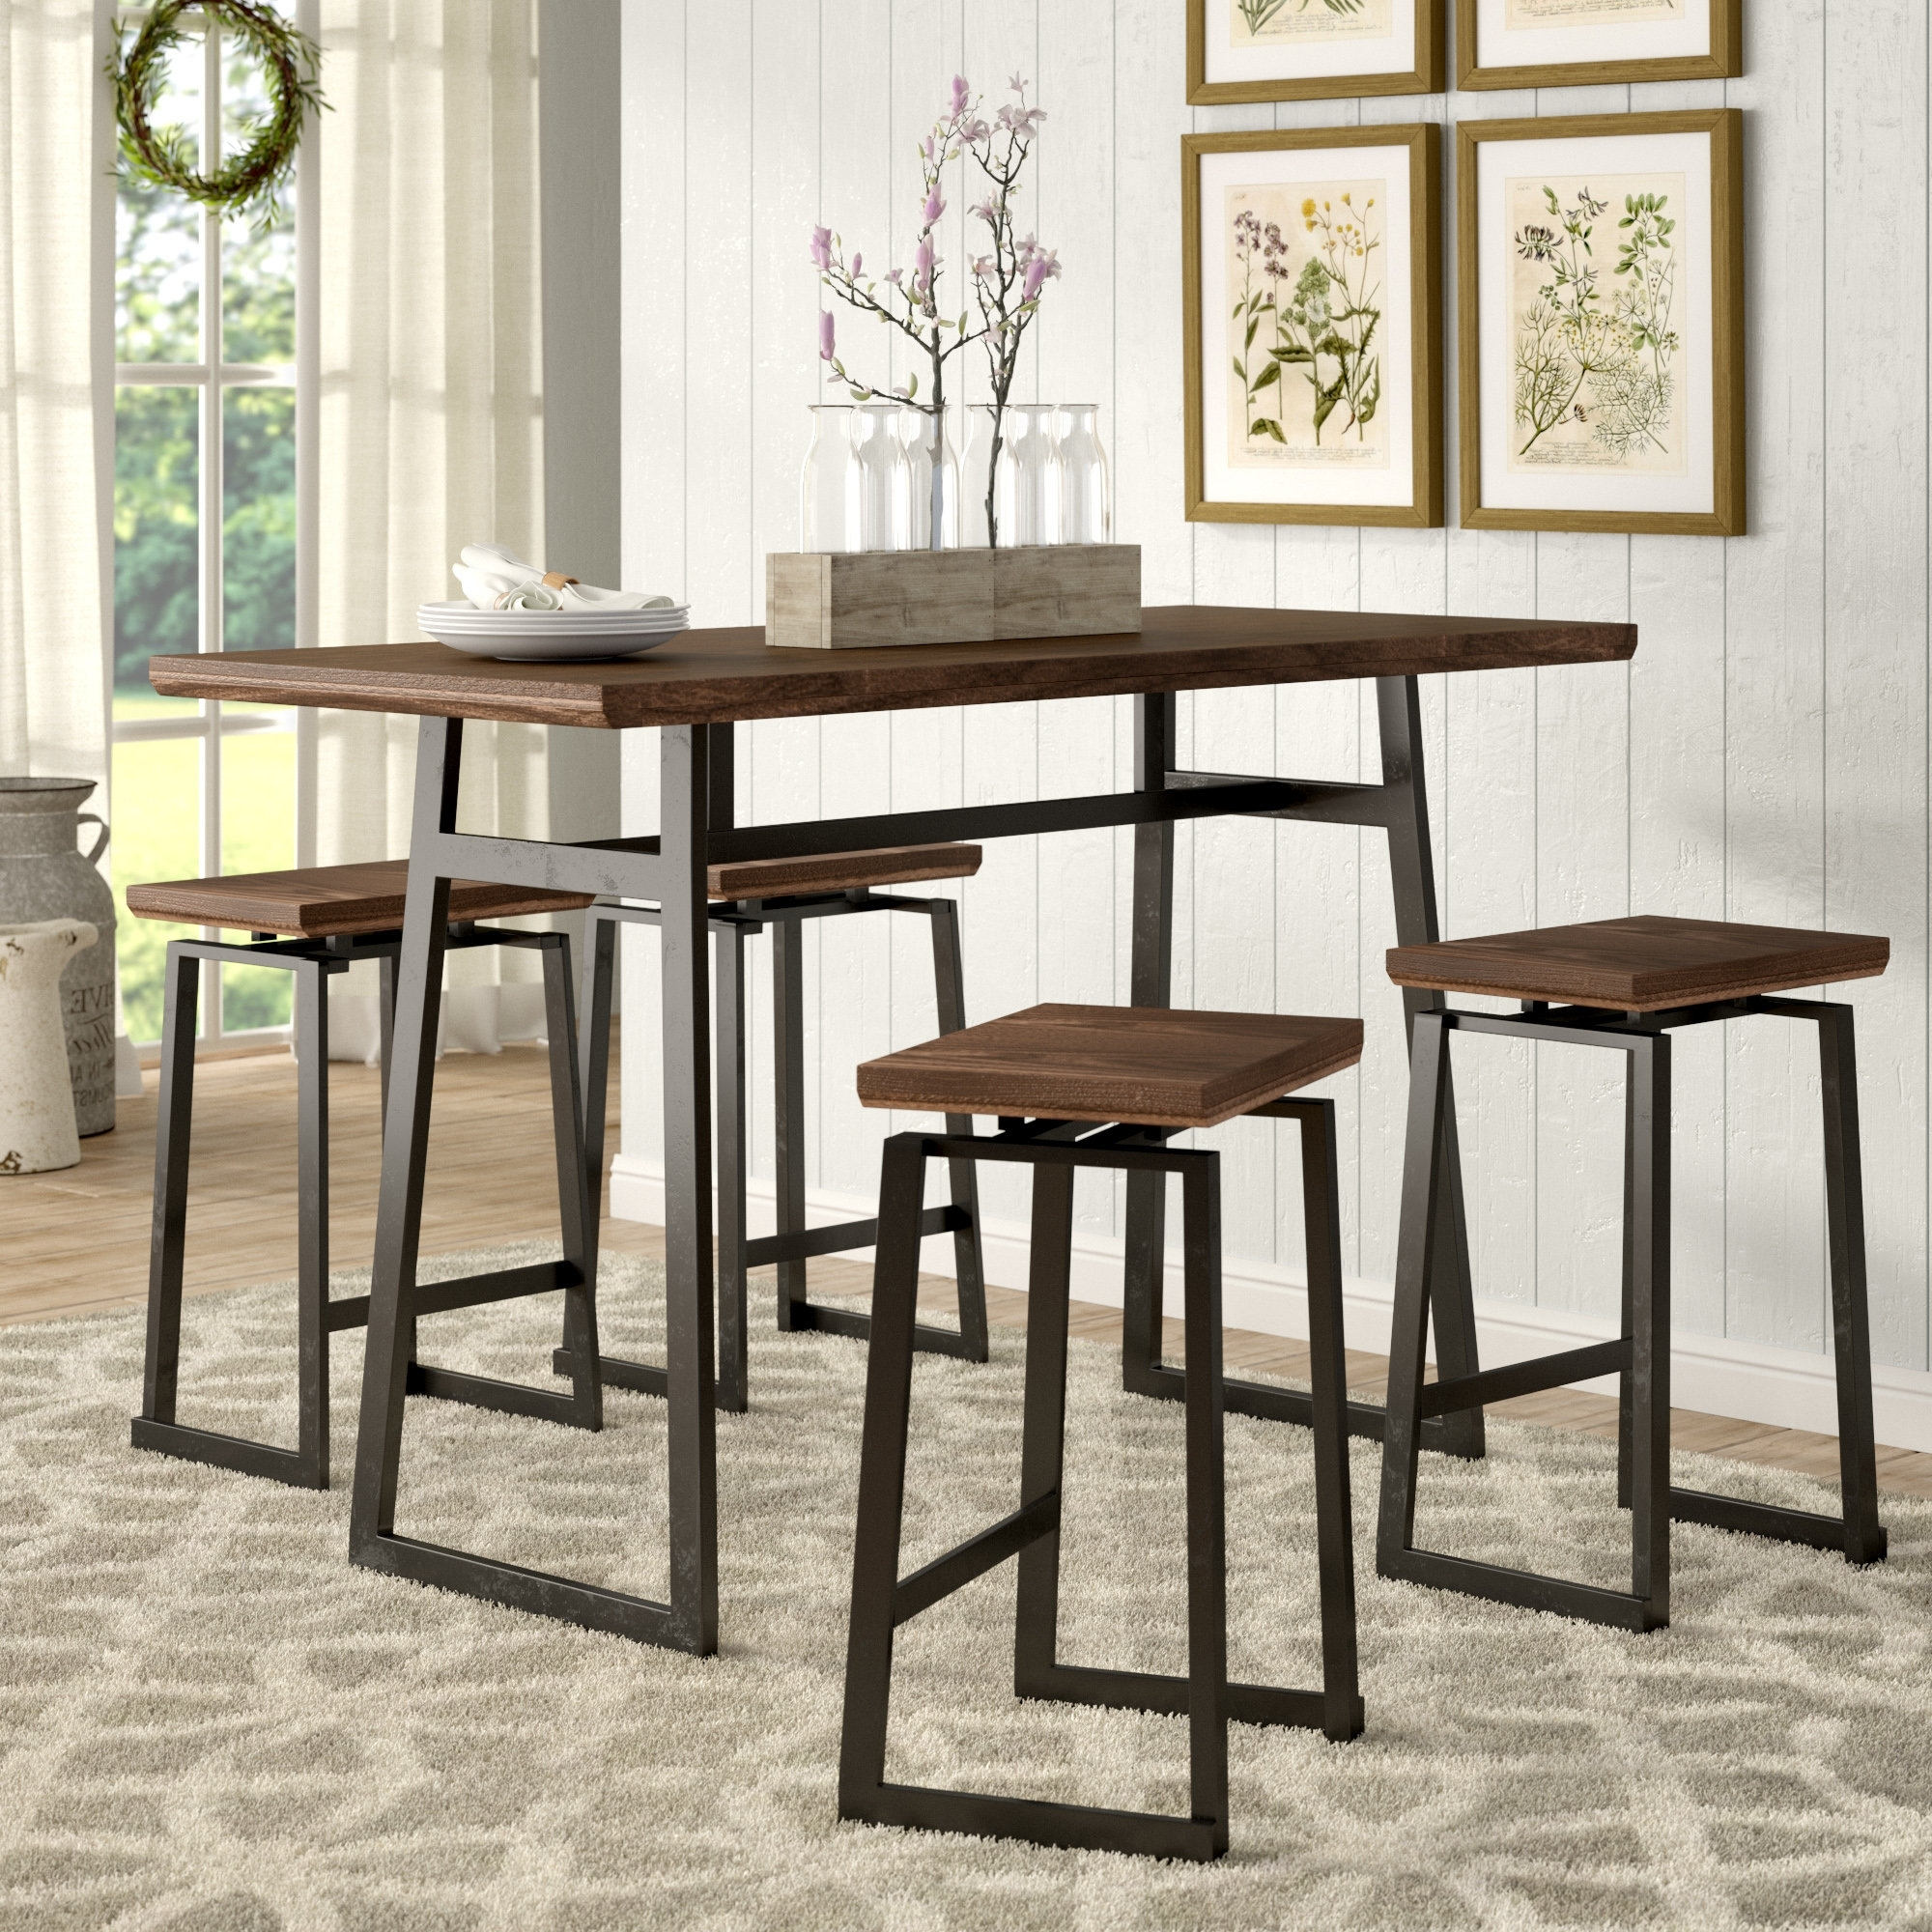 Jaxon 5 Piece Extension Counter Sets With Fabric Stools regarding 2018 Gracie Oaks Platane Industrial 5 Piece Counter Height Dining Set